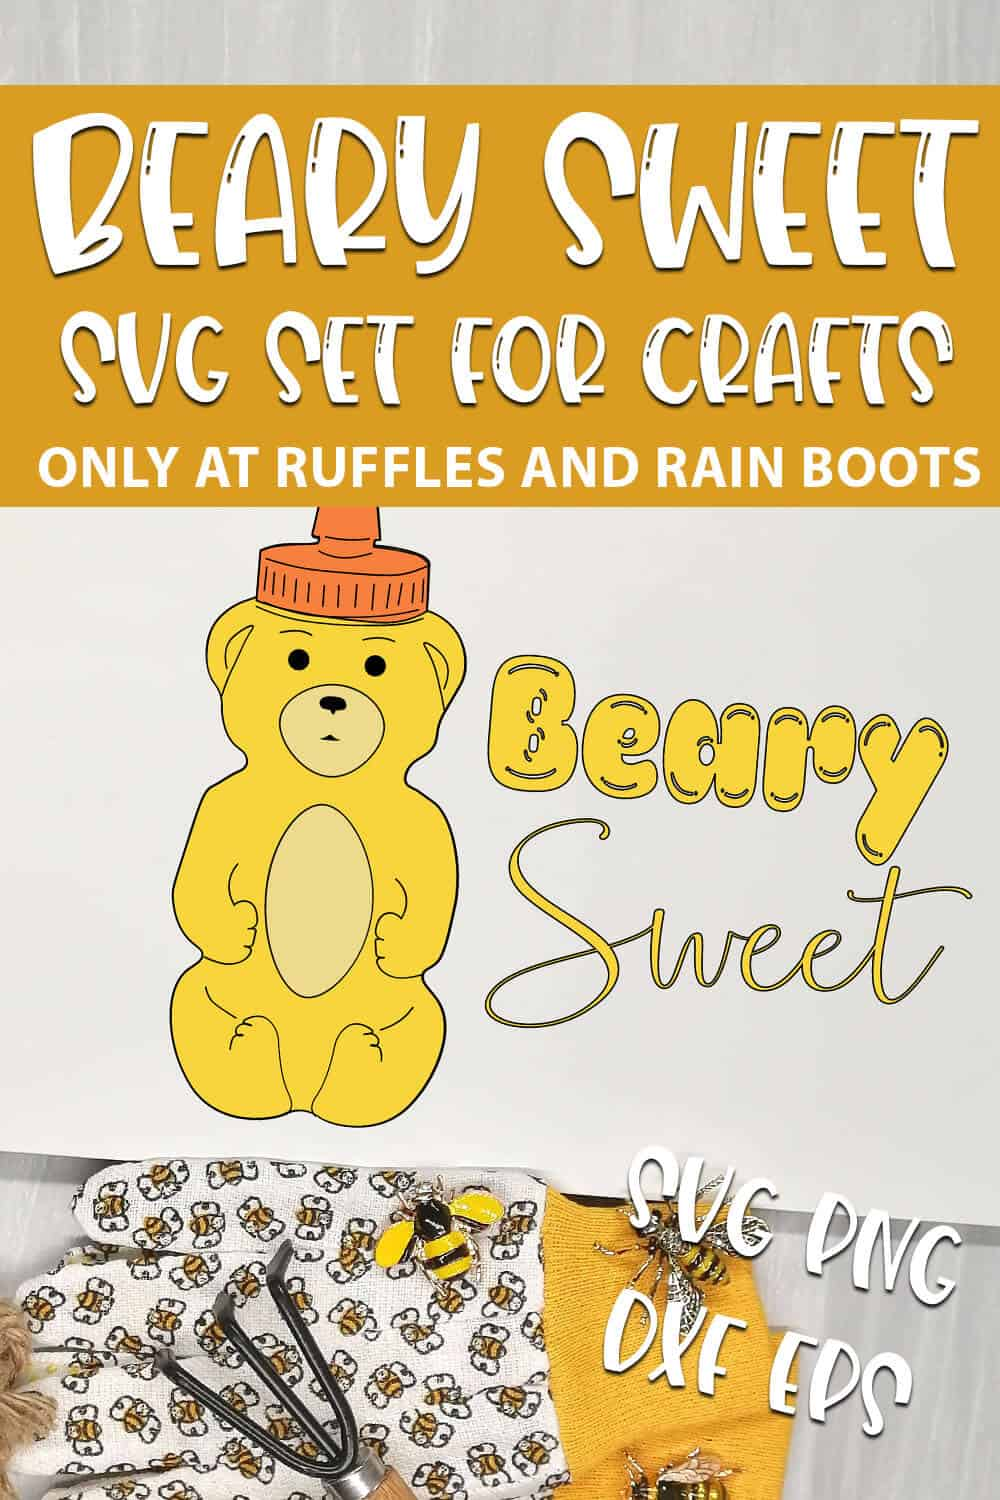 Beary Sweet cut file for cricut or silhouette with text which reads beary sweet svg set for crafts svg png dxf eps